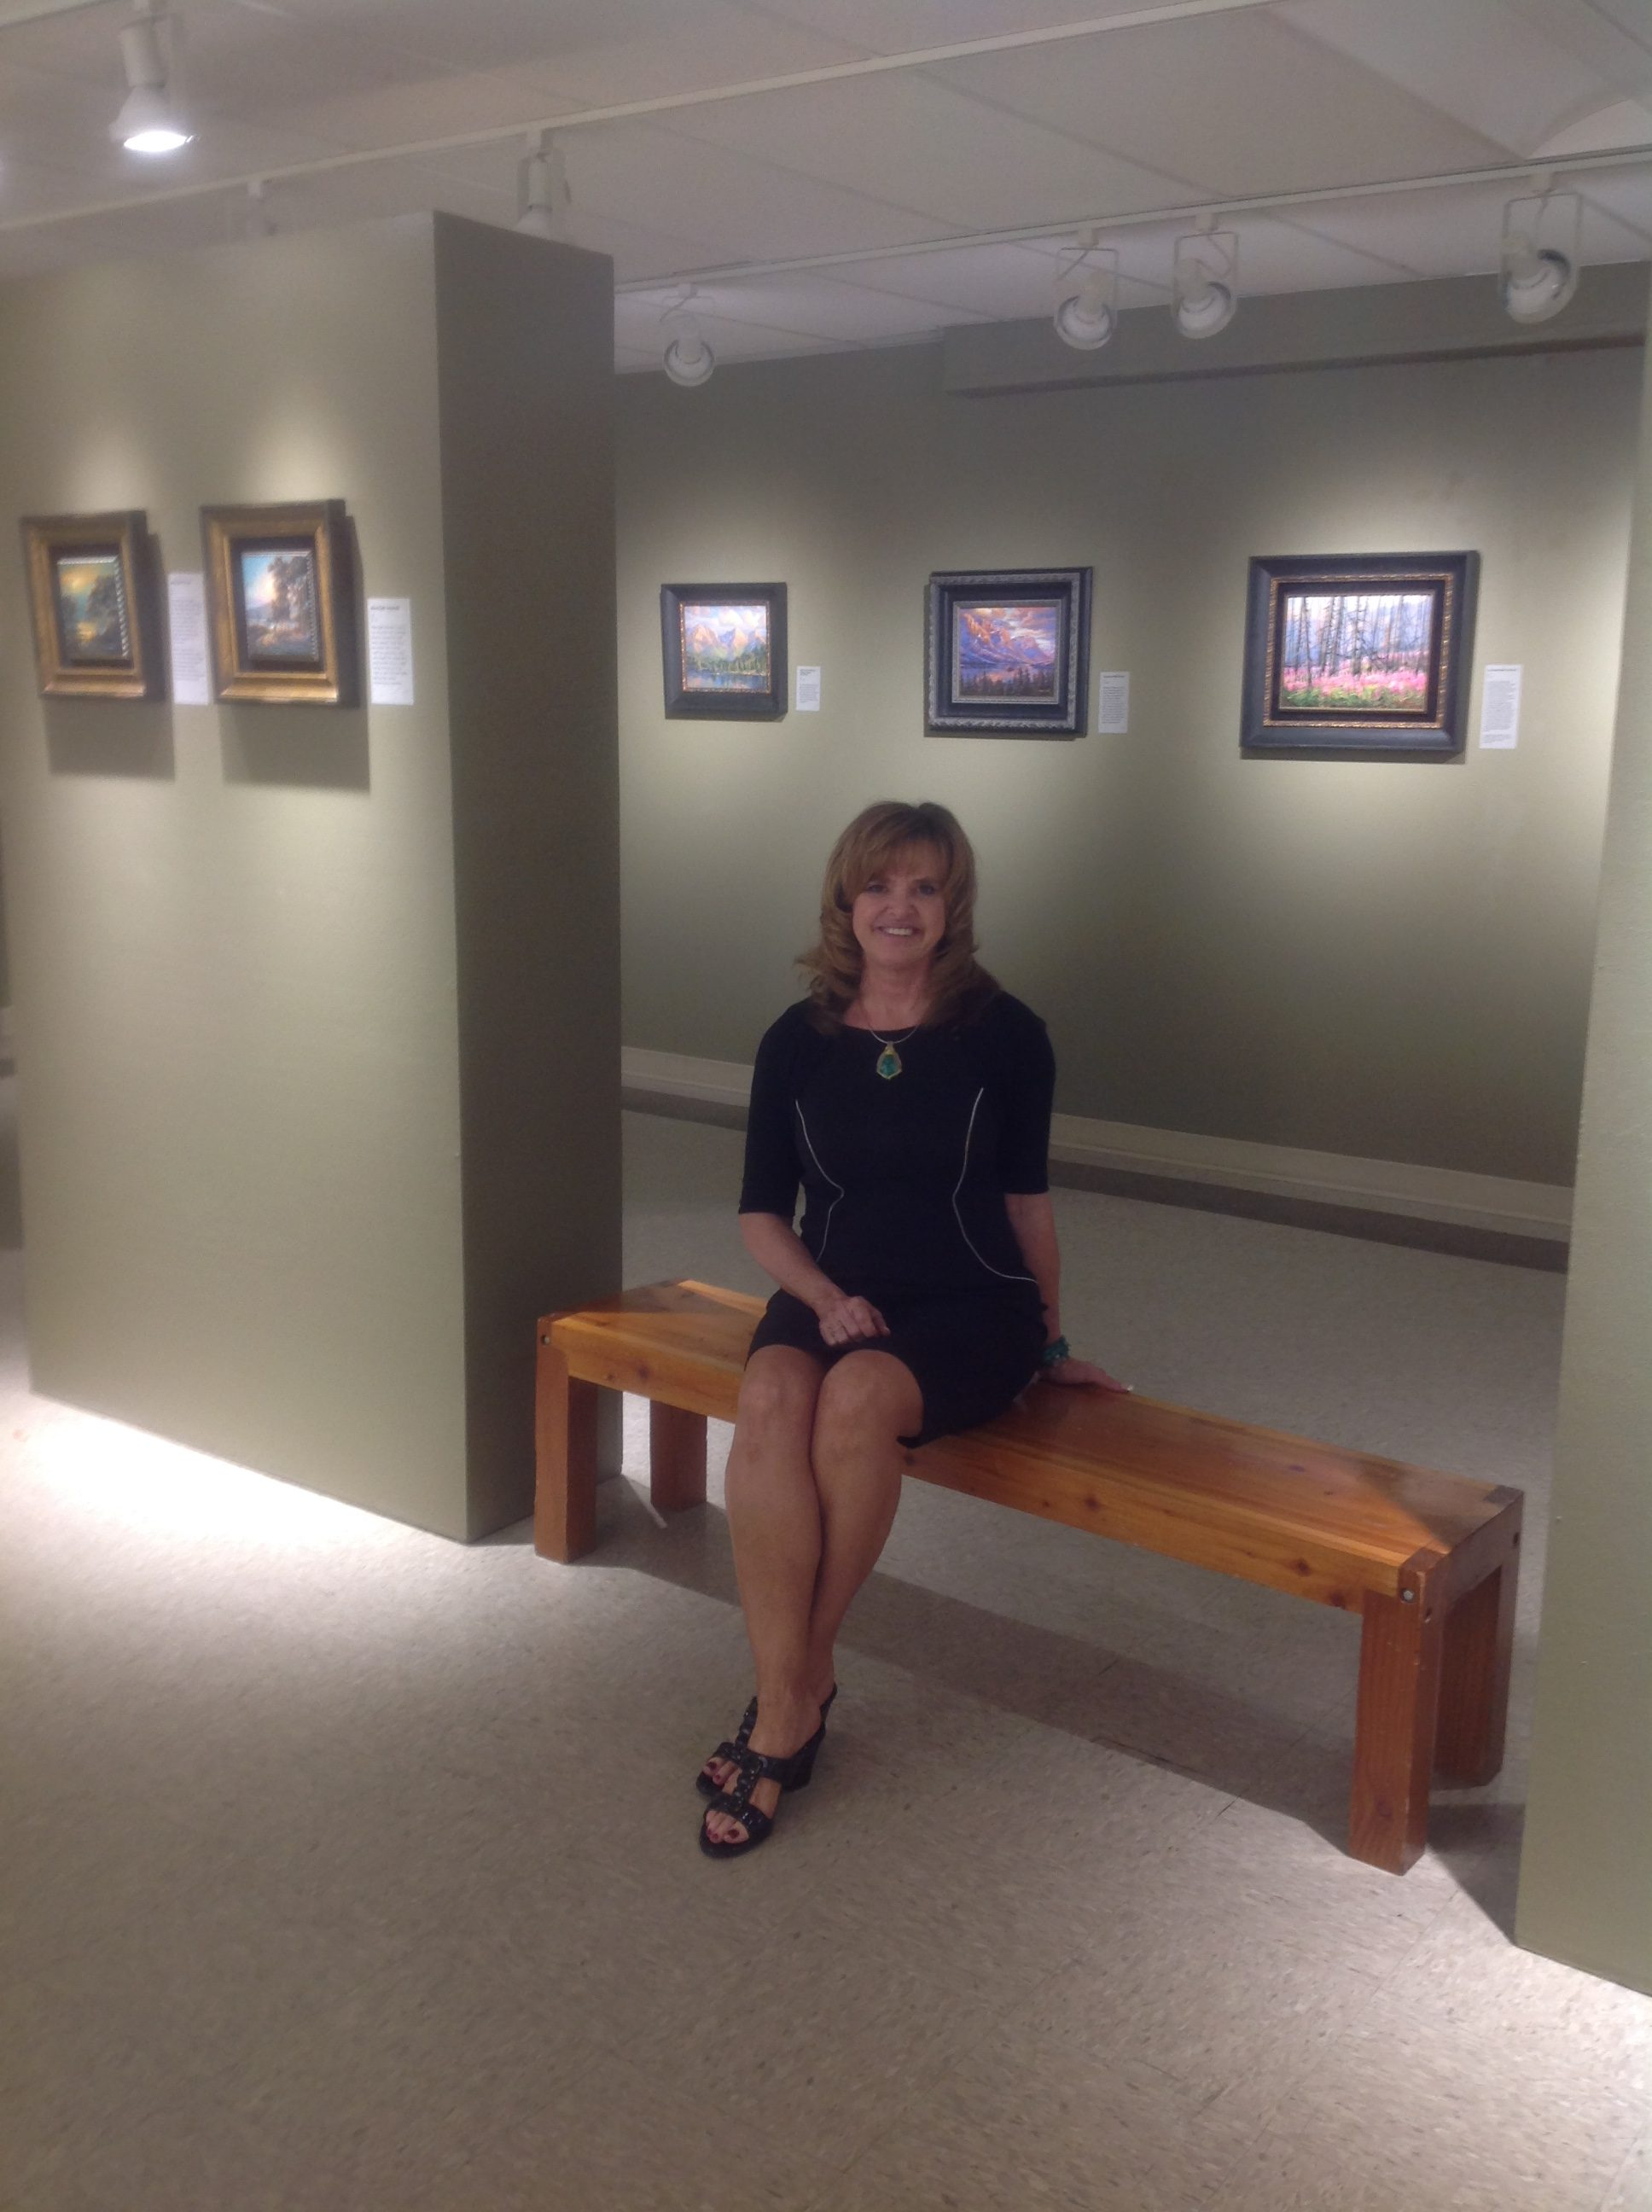 Mumm Honored With Solo Museum Show at the Hockaday